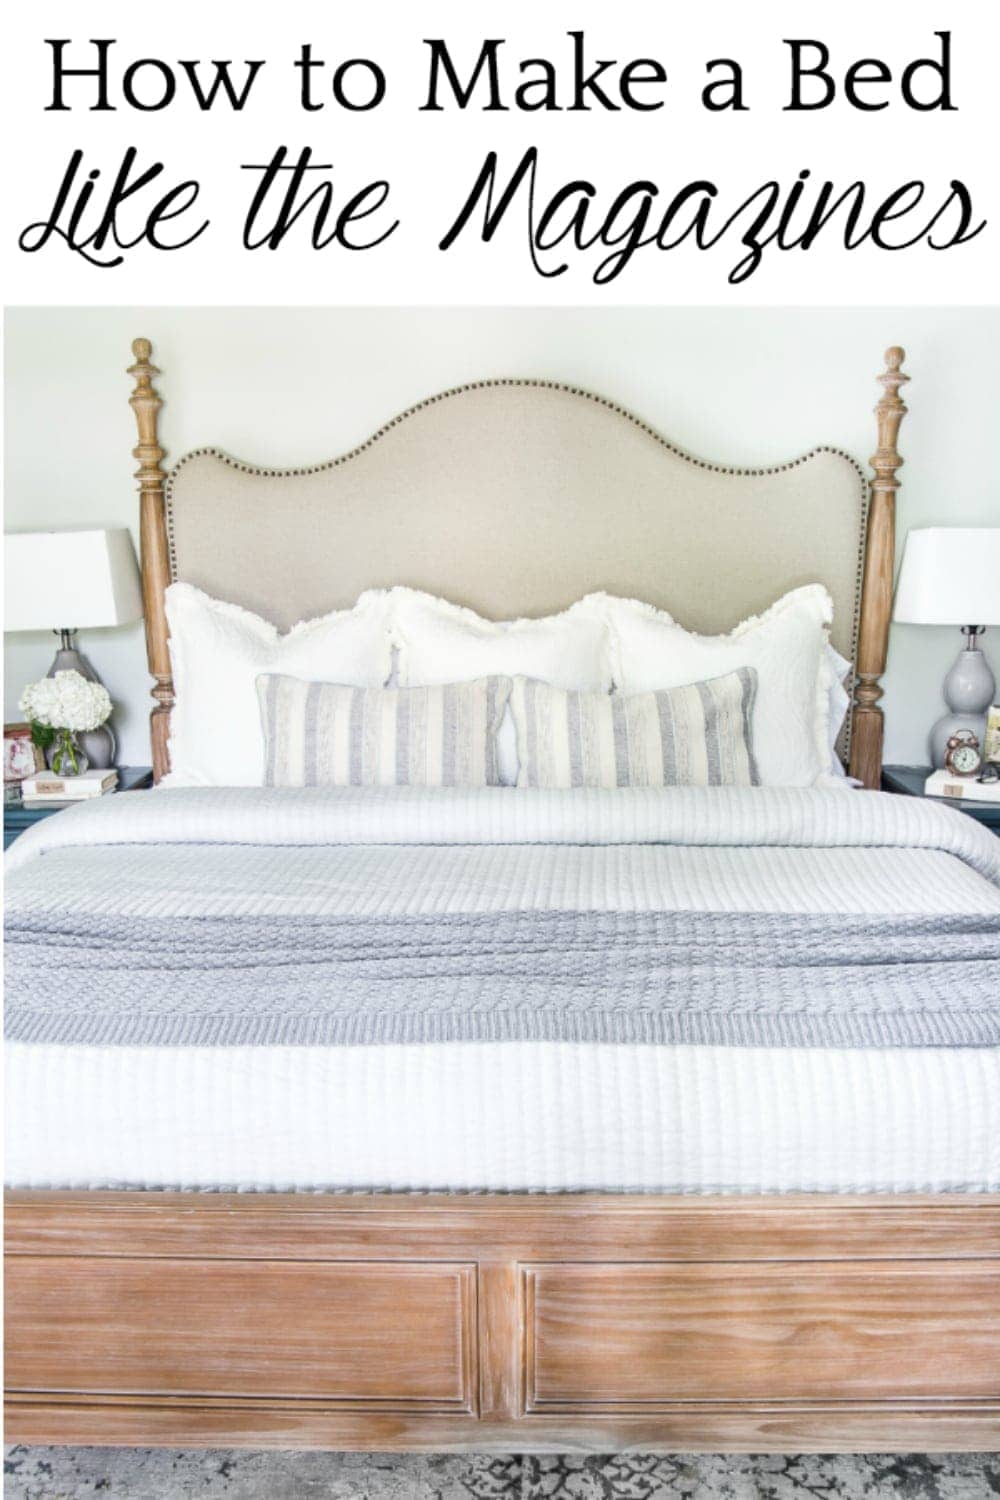 9 steps to make your bed look plush and beautiful like a designer's. #masterbedroom #makebed #bedding #neutraldecor #bedmaking #makeabed #decortip #decoratingtip #bedroomdecor